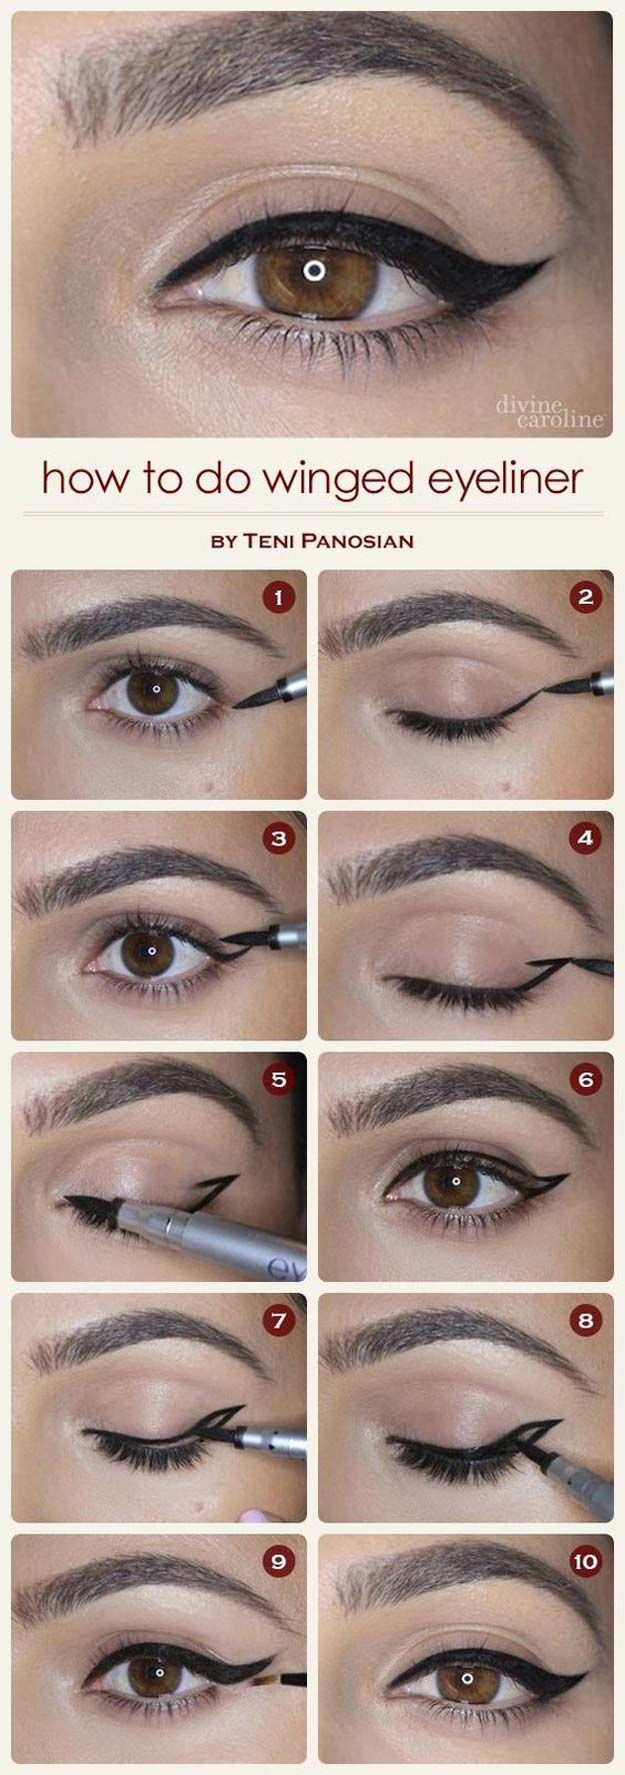 Winged Eyeliner Tutorials - How To Do Winged Eyeliner Like A Boss Beauty Blogger- Easy Step By Step Tutorials For Beginners and Hacks Using Tape and a Spoon, Liquid Liner, Thing Pencil Tricks and Awesome Guides for Hooded Eyes - Short Video Tutorial for Perfect Simple Dramatic Looks - thegoddess.com/winged-eyeliner-tutorials